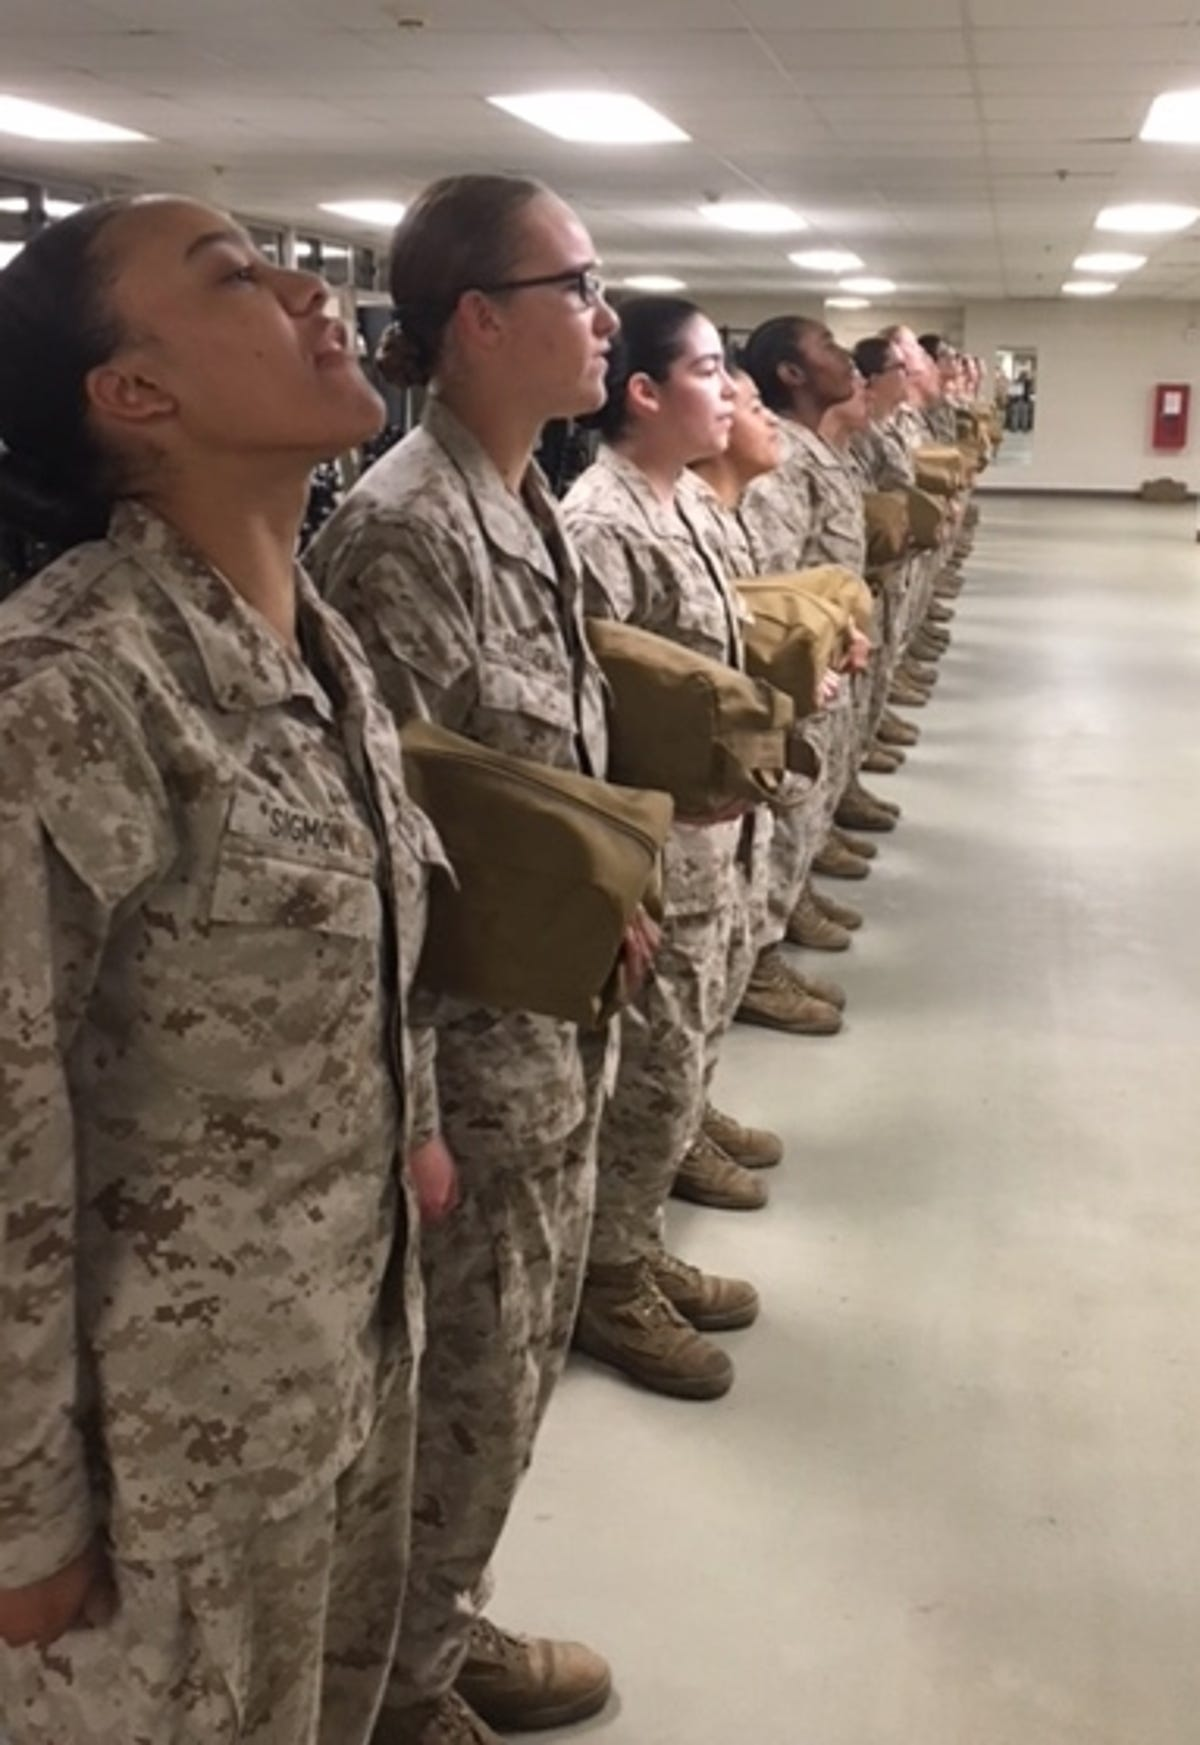 Marine Corps boot camp undergoes cultural shift as more